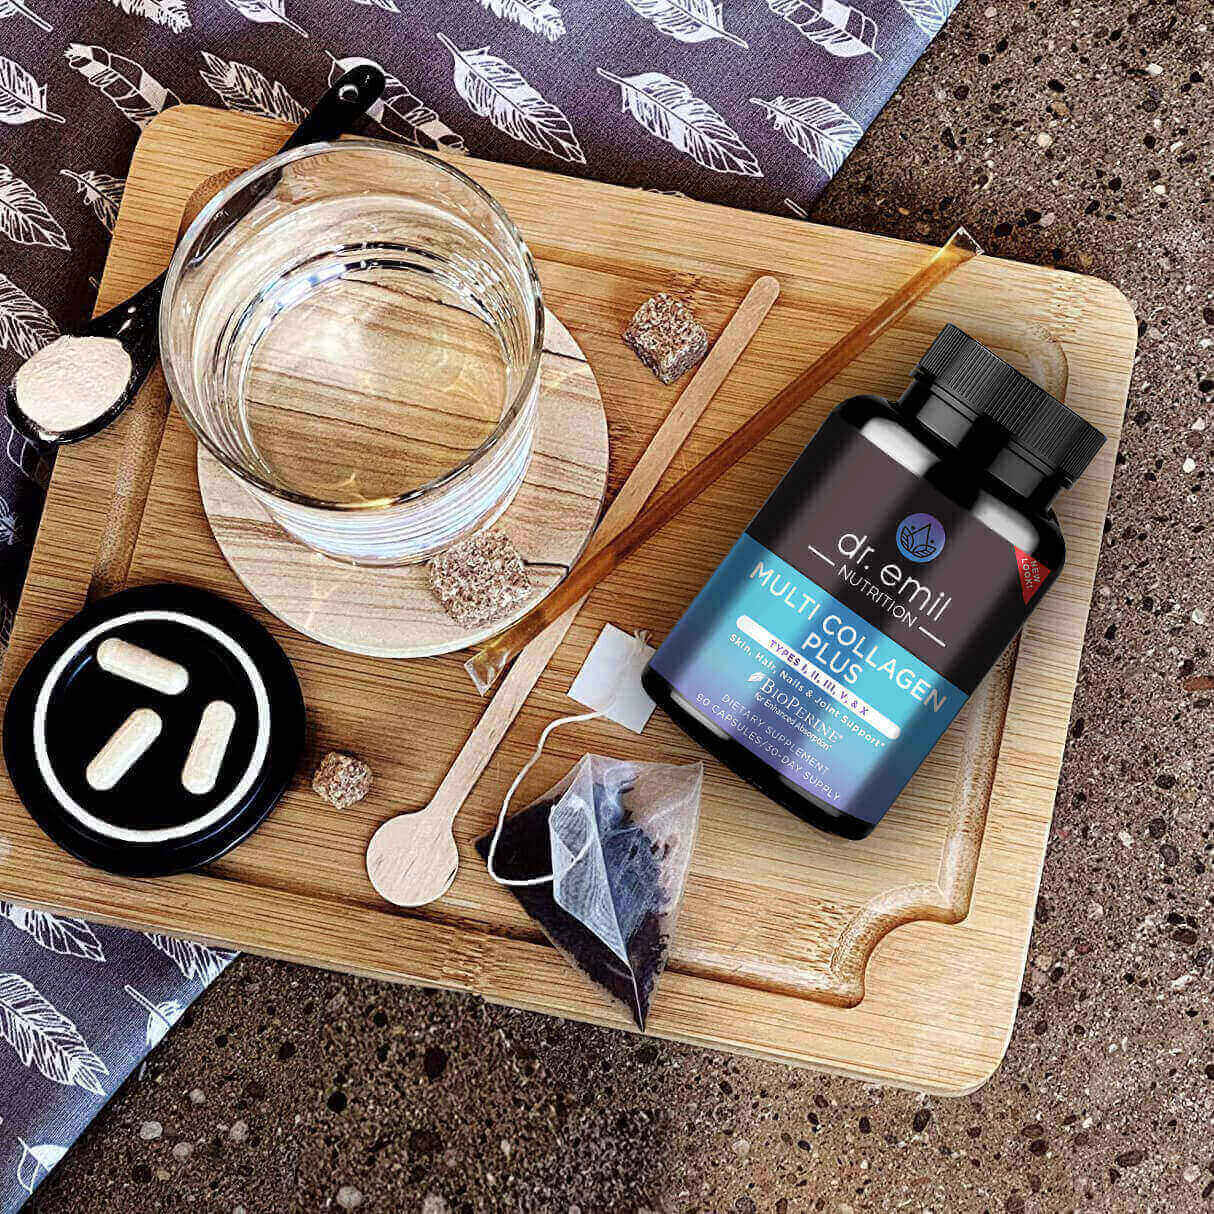 On a wooden cutting board is a cup of water on a coaster, a spoon with powder in it, a stick of honey, three pills on a black tray, and a bottle of collagen supplements.